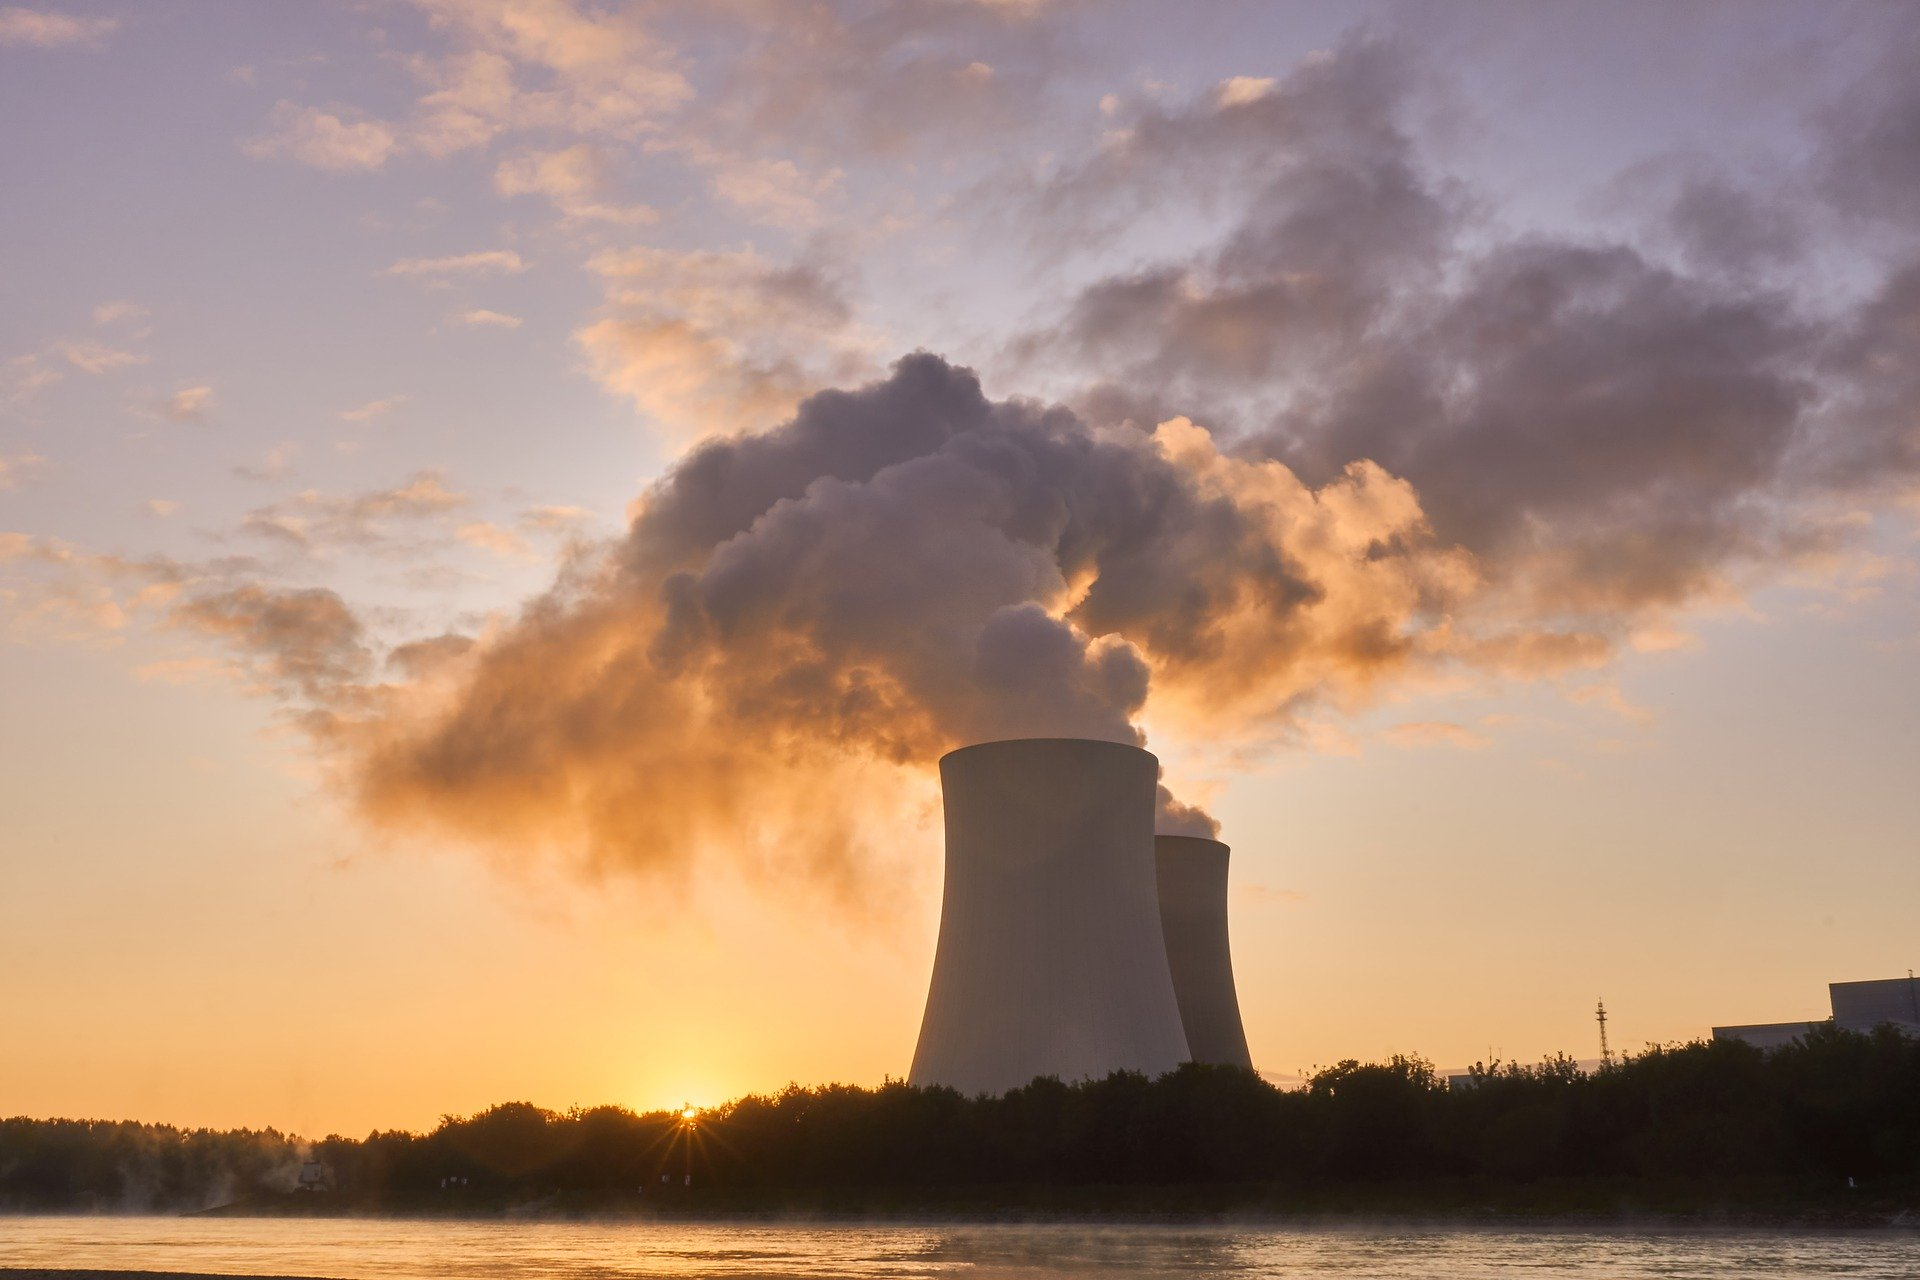 A nuclear power station in front of a sunset